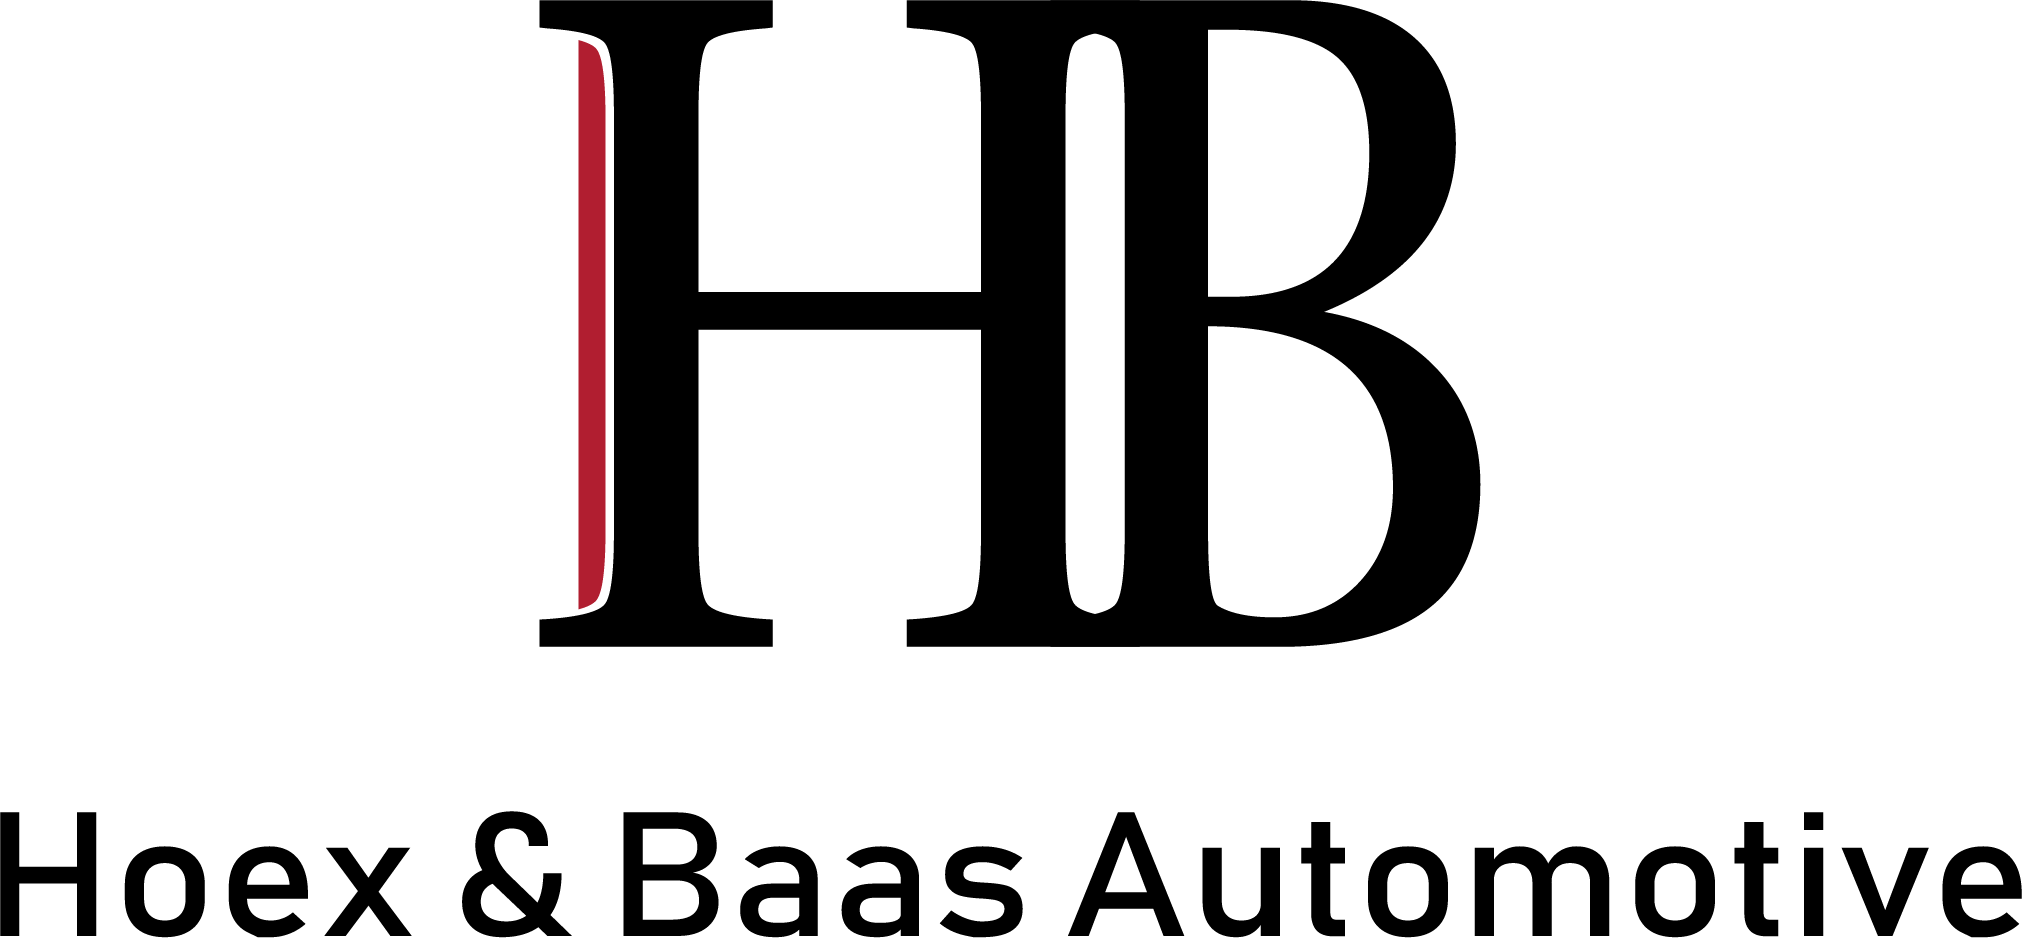 Hoex & Baas Automotive